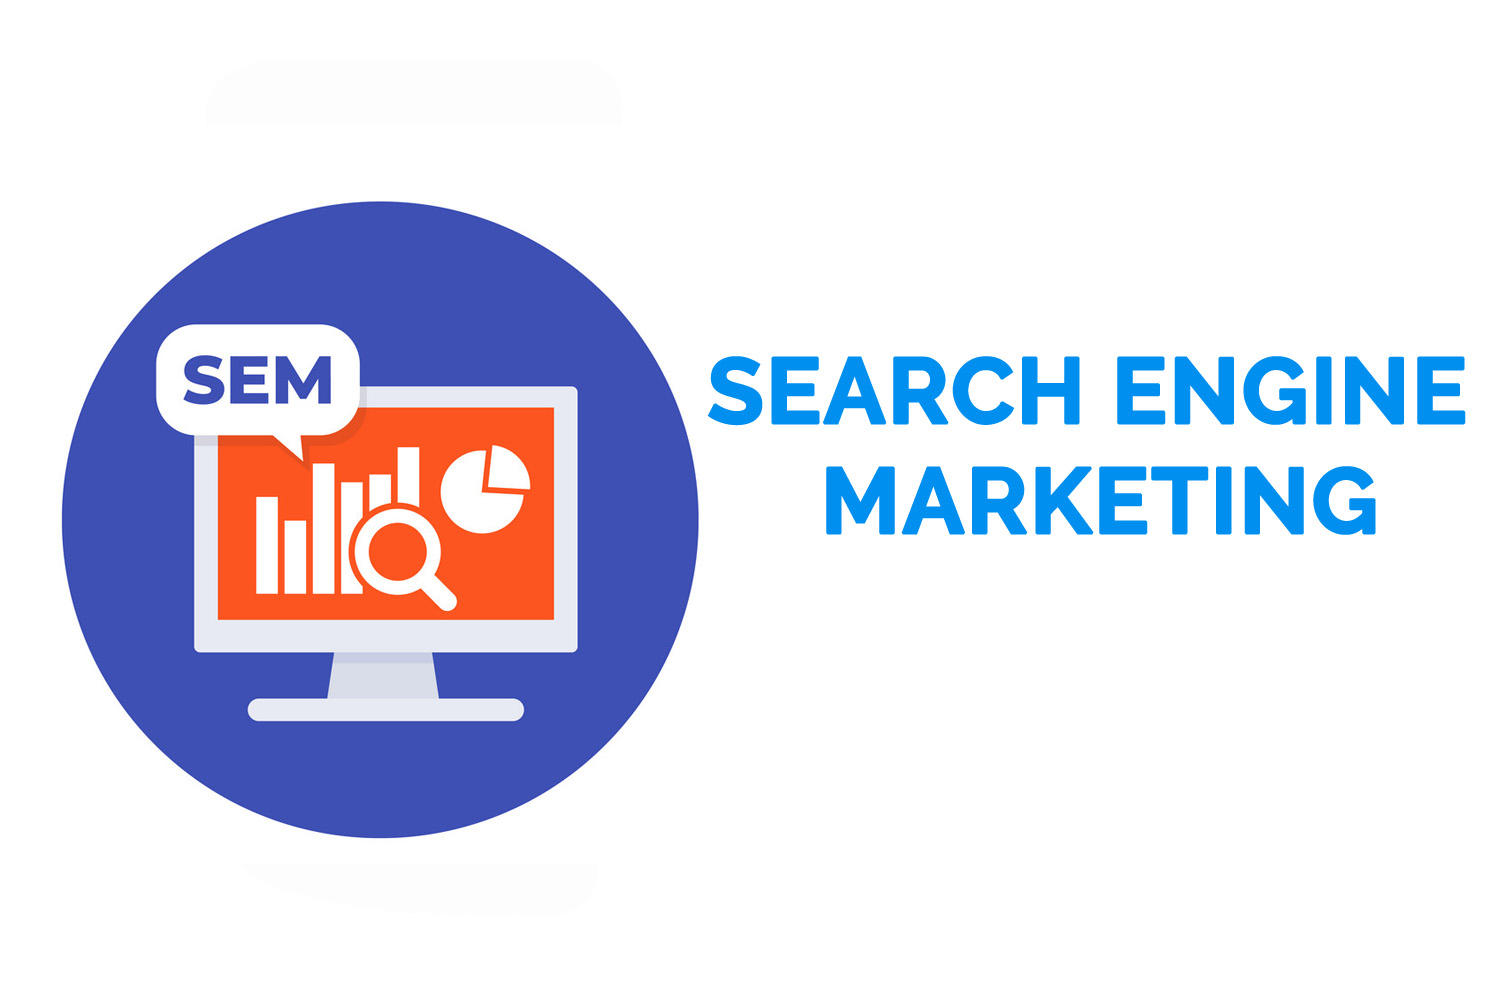 Web Marketing - Search Engine Marketing SEM - Agentie Marketing Timisoara - Google Ads - Google Adwords - Campanii makreting - companie makreting agentie web